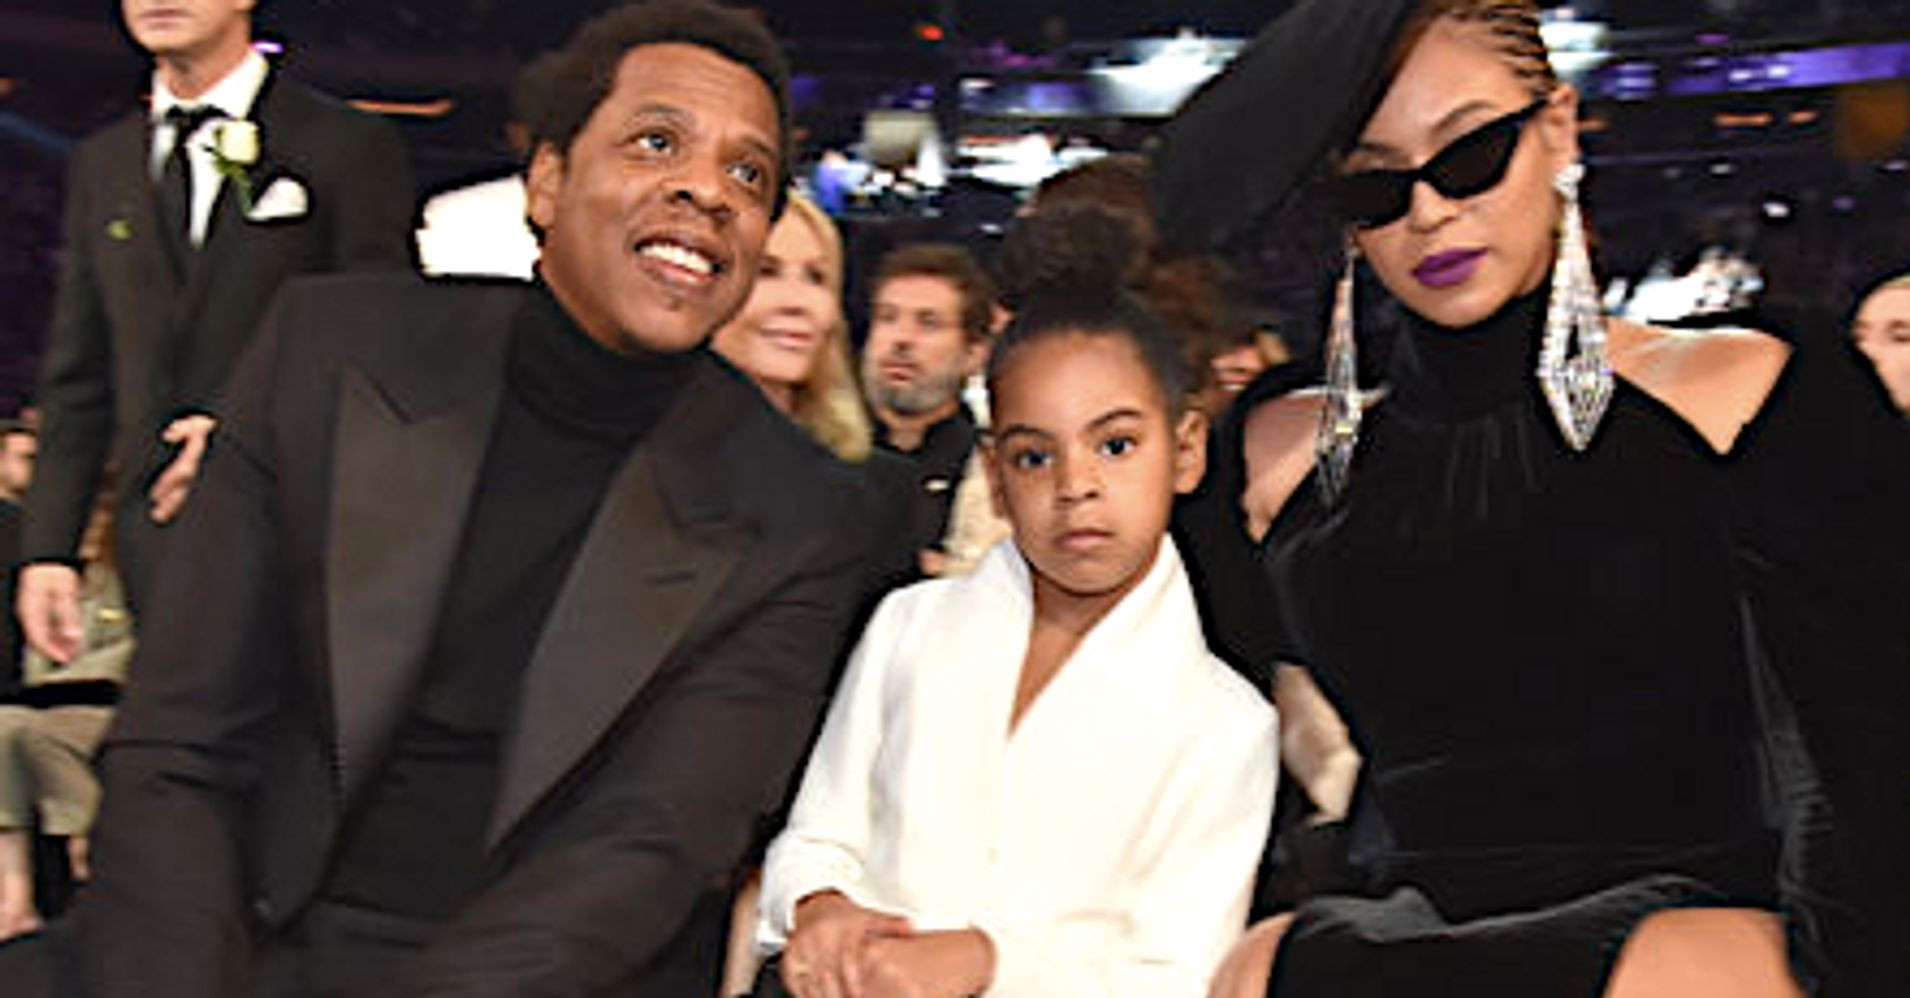 Watch Blue Ivy Bid $19,000 On Art Like It's No Big Deal